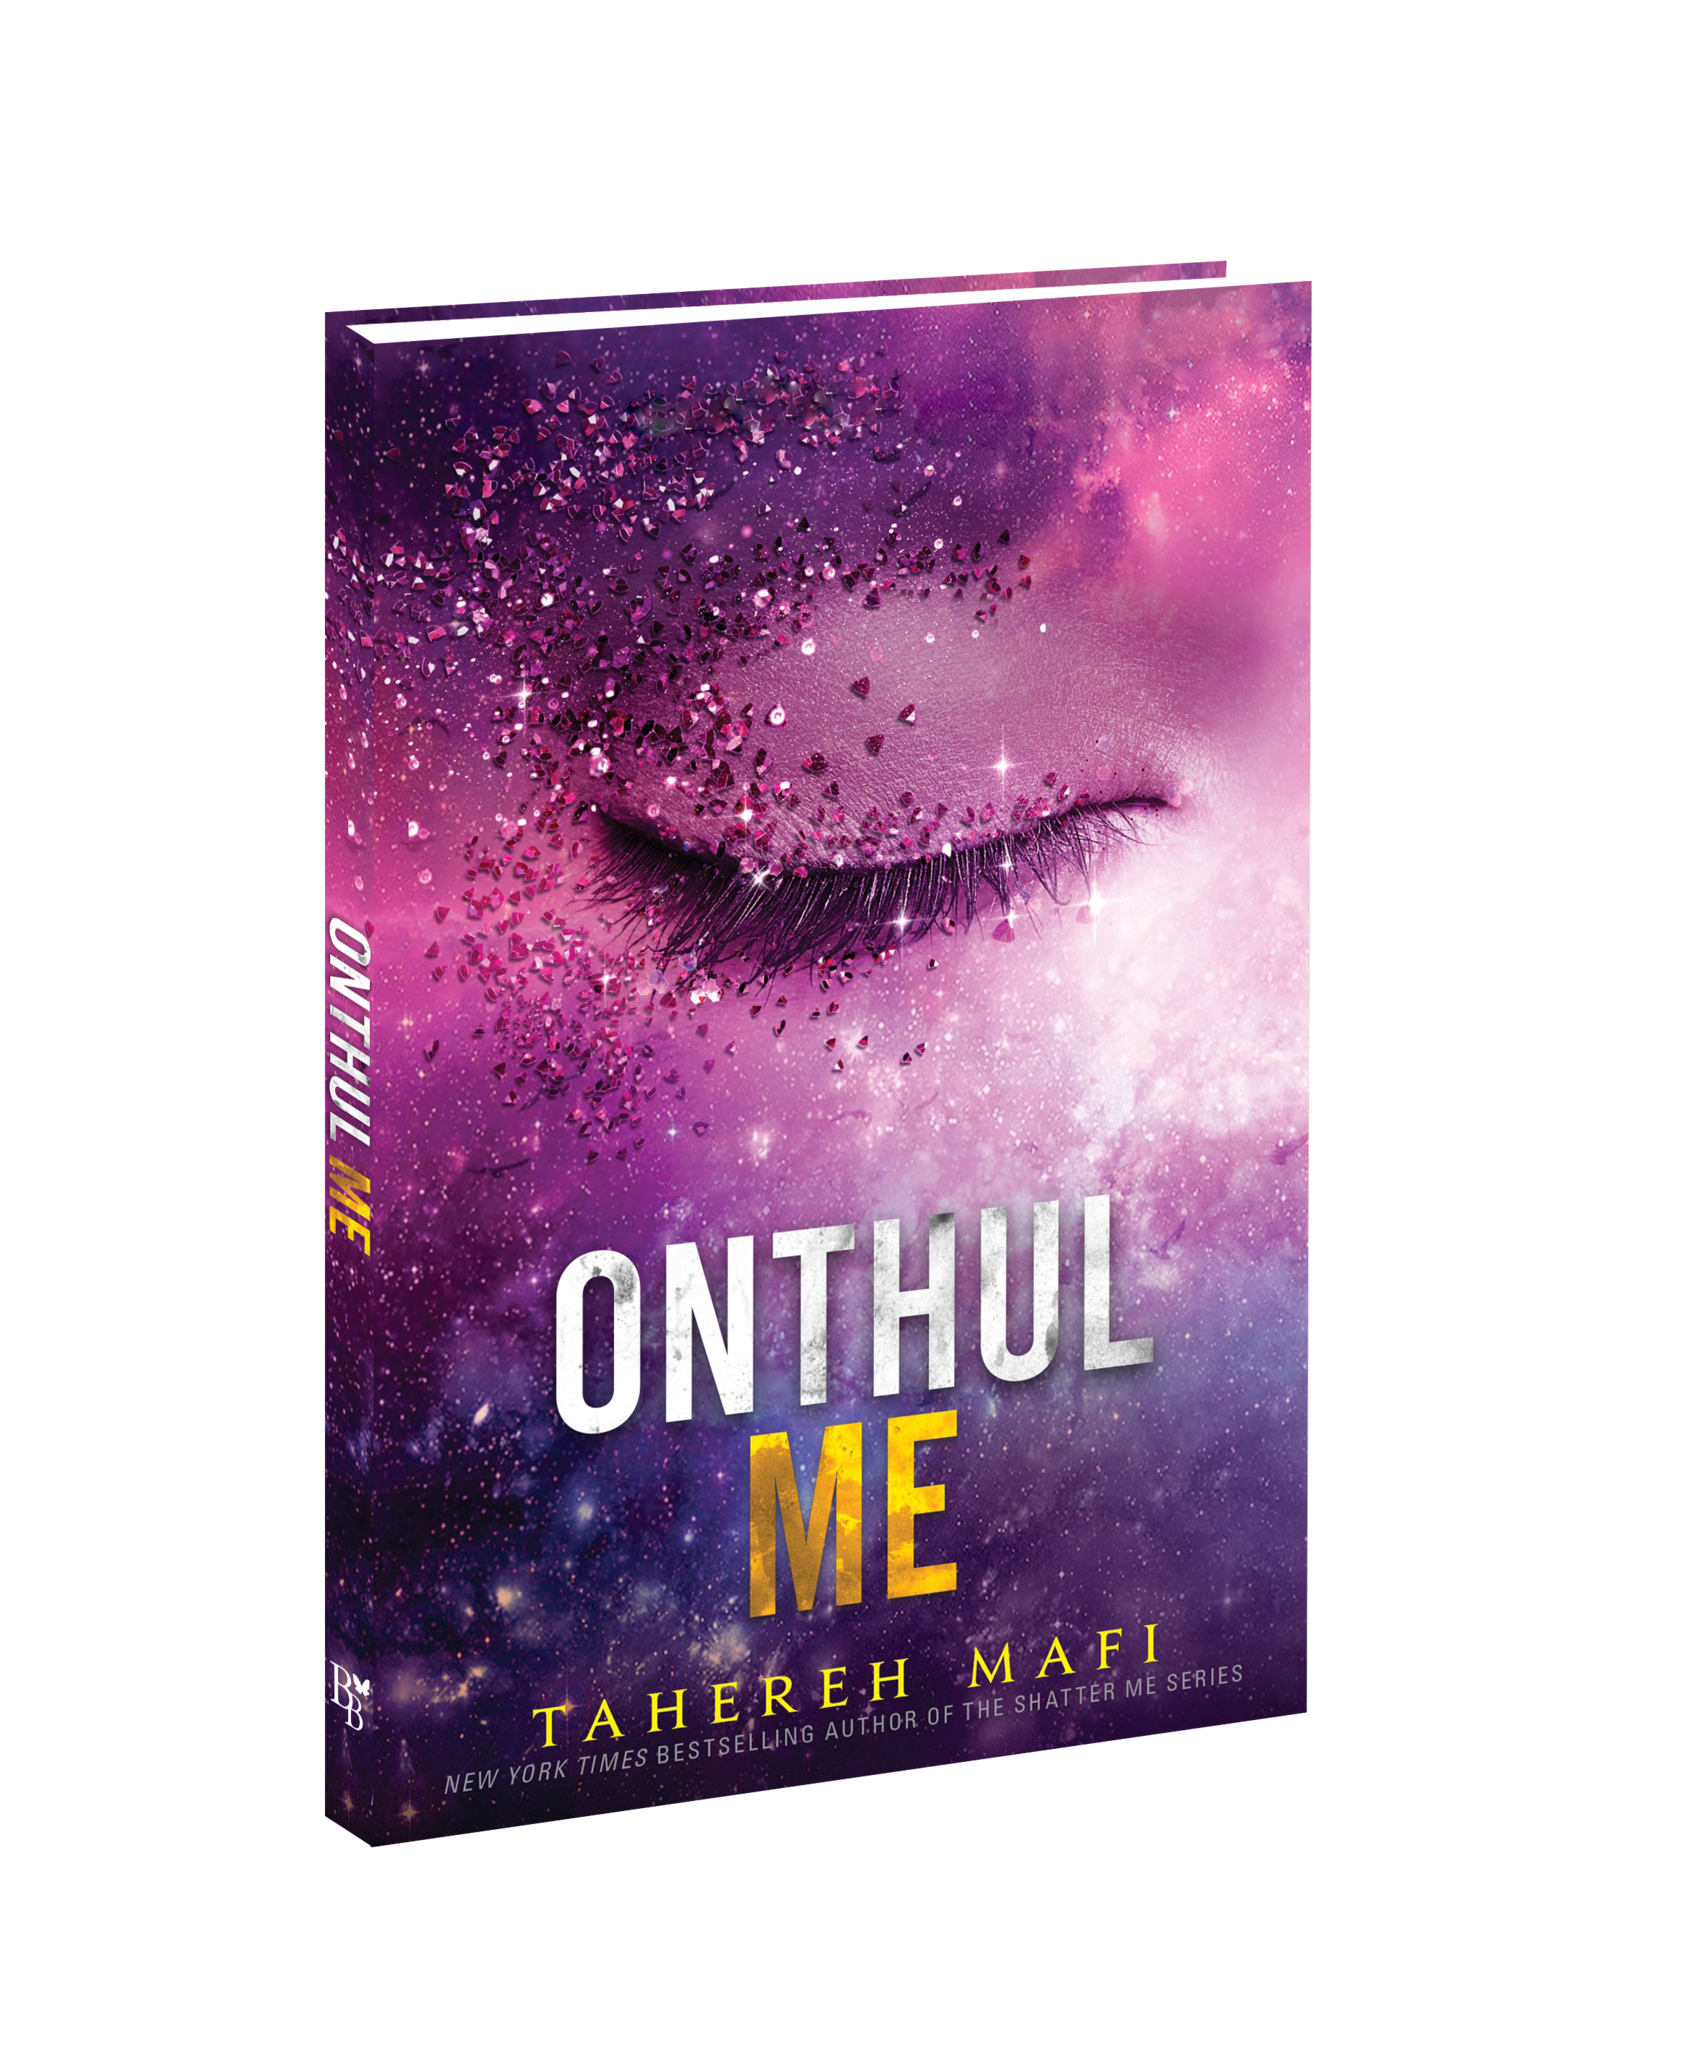 Onthul me (POD Hardcover)